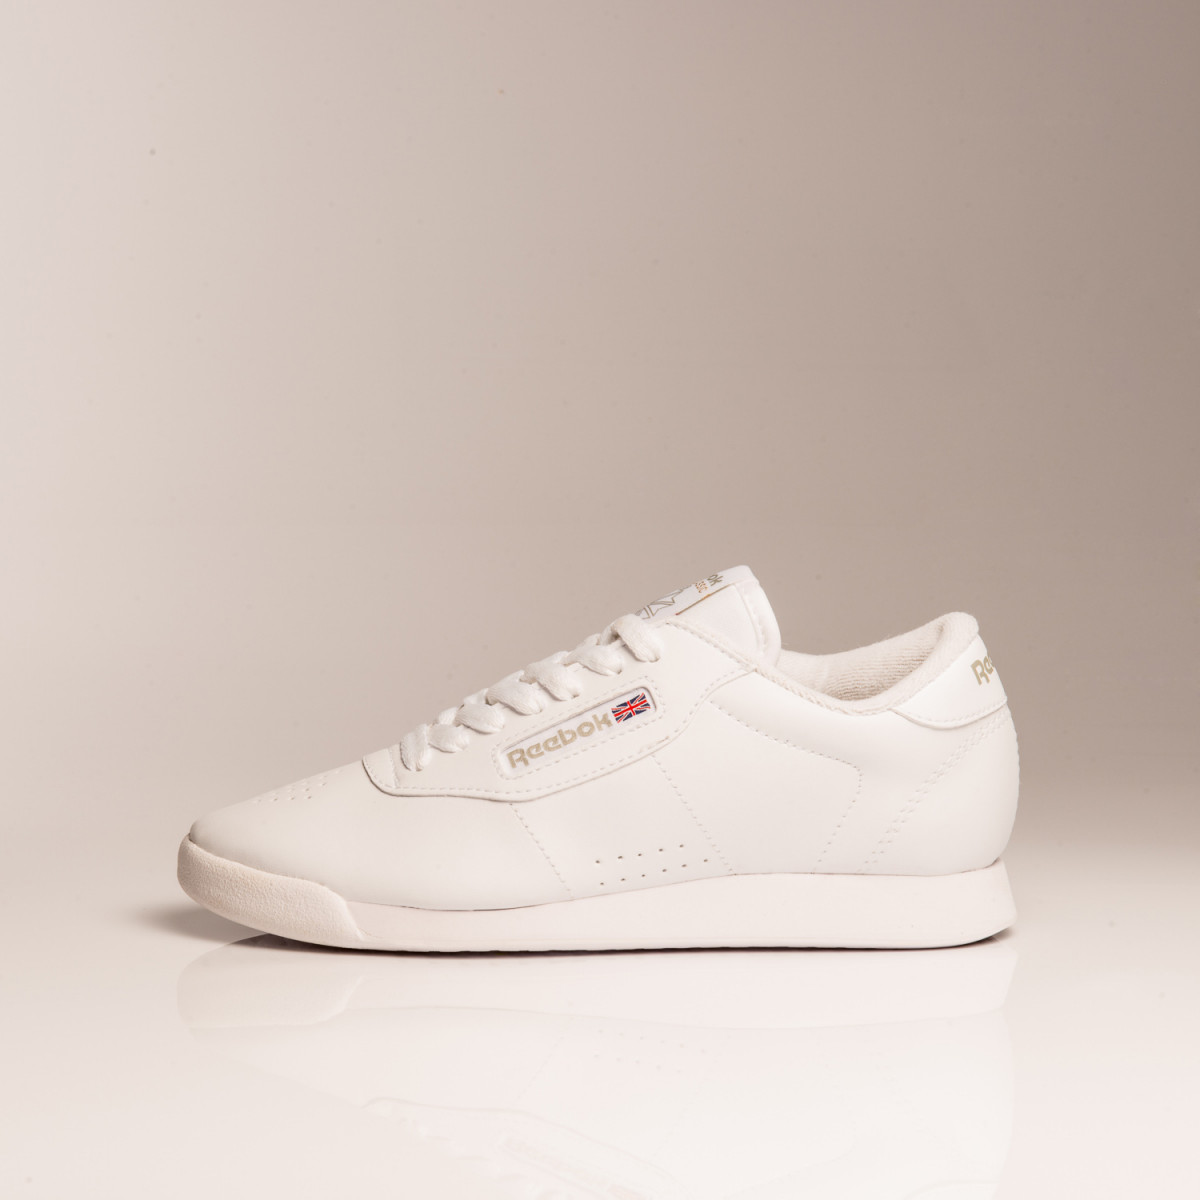 Zapatillas Reebok Princess Mf